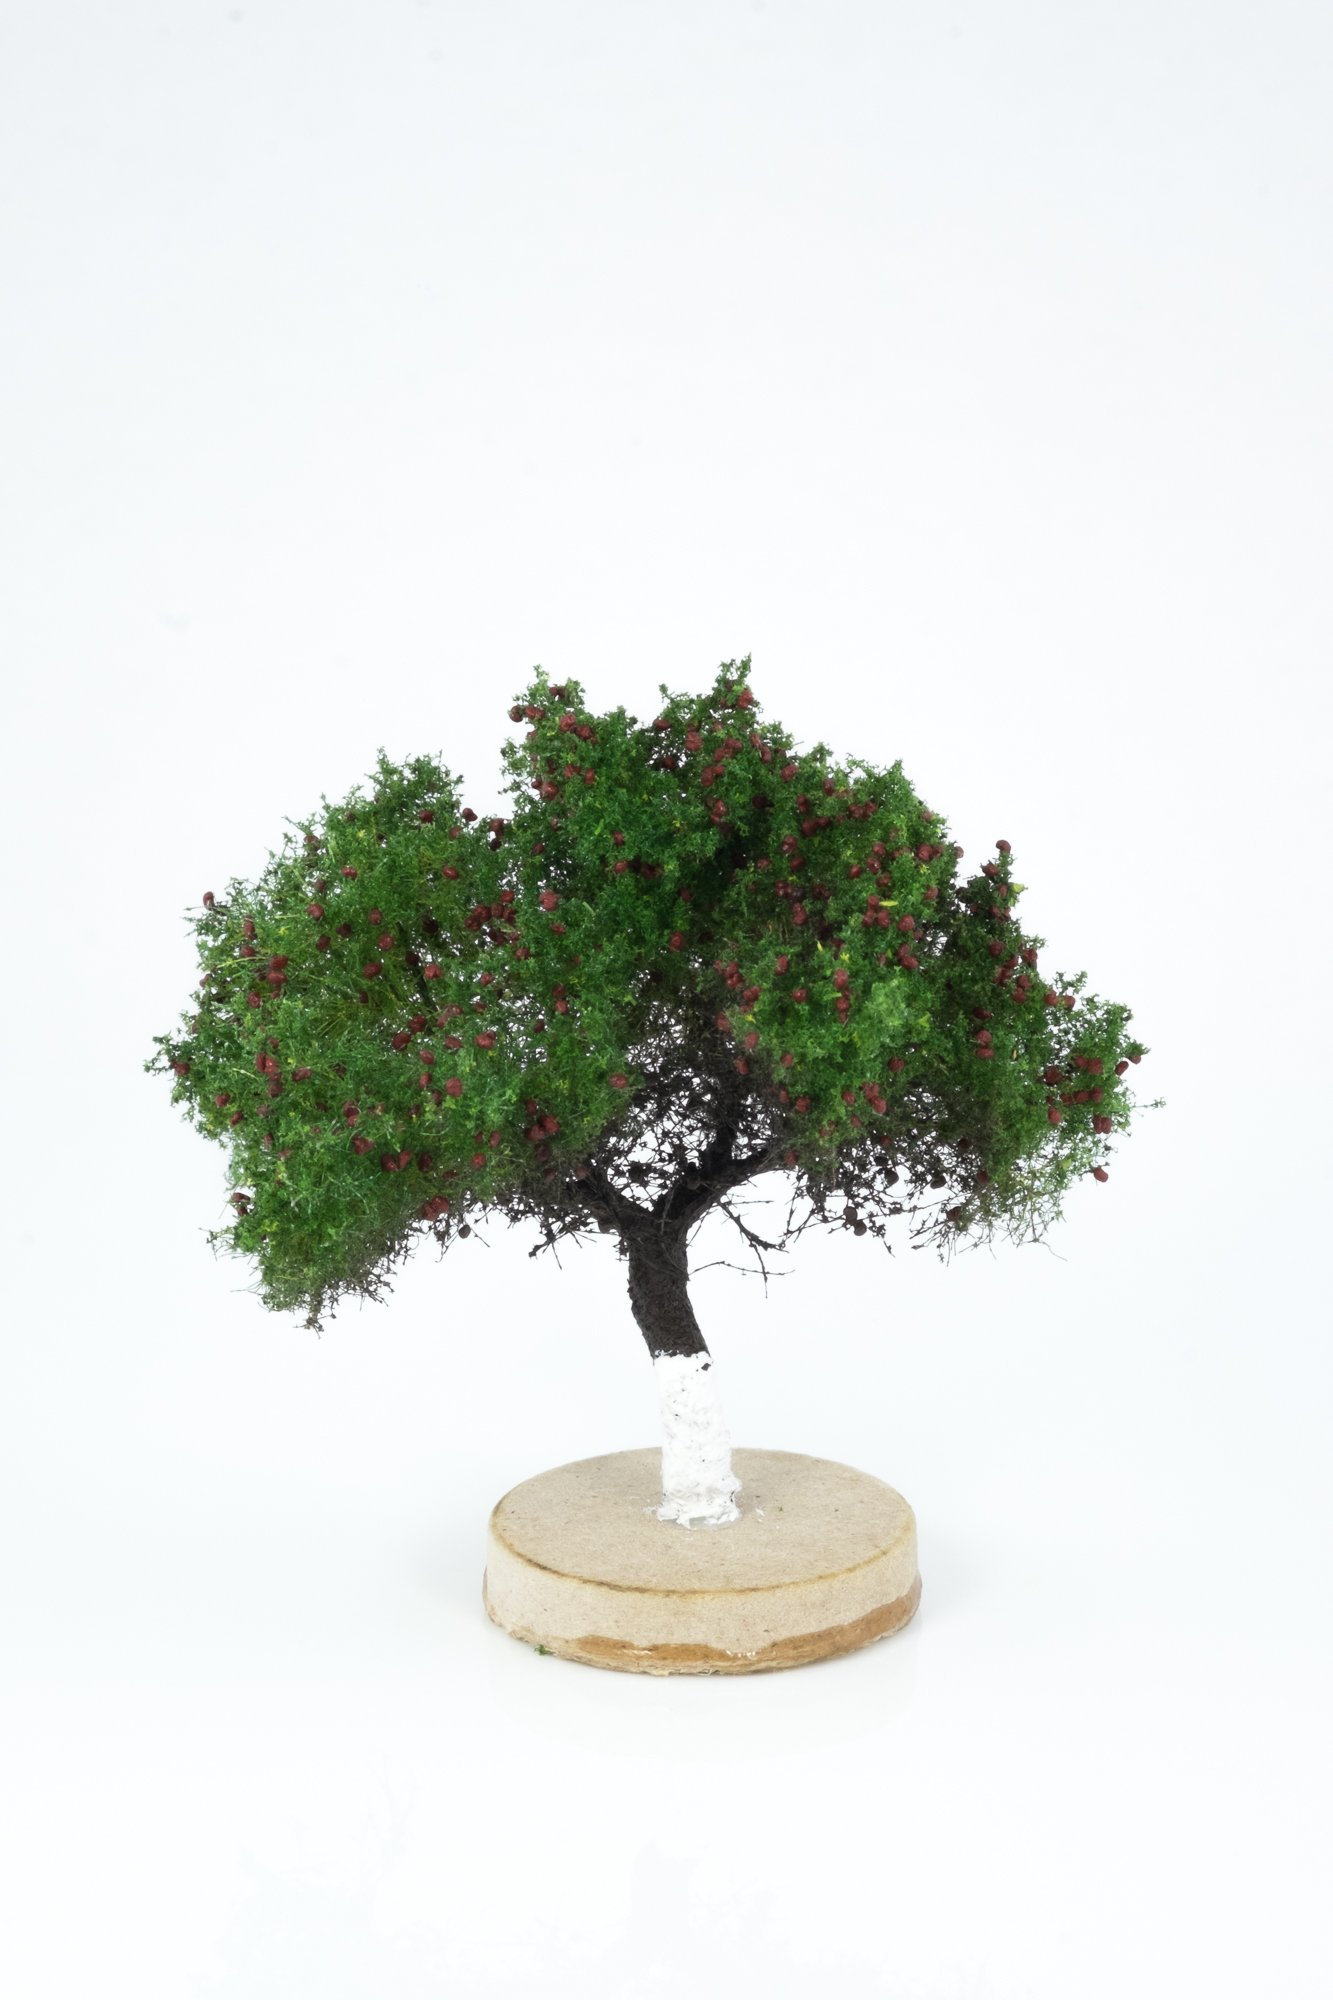 Hand-made, green apple tree model. Size between 6 and 8 cm. Made from high quality model supplies by Primo Models.